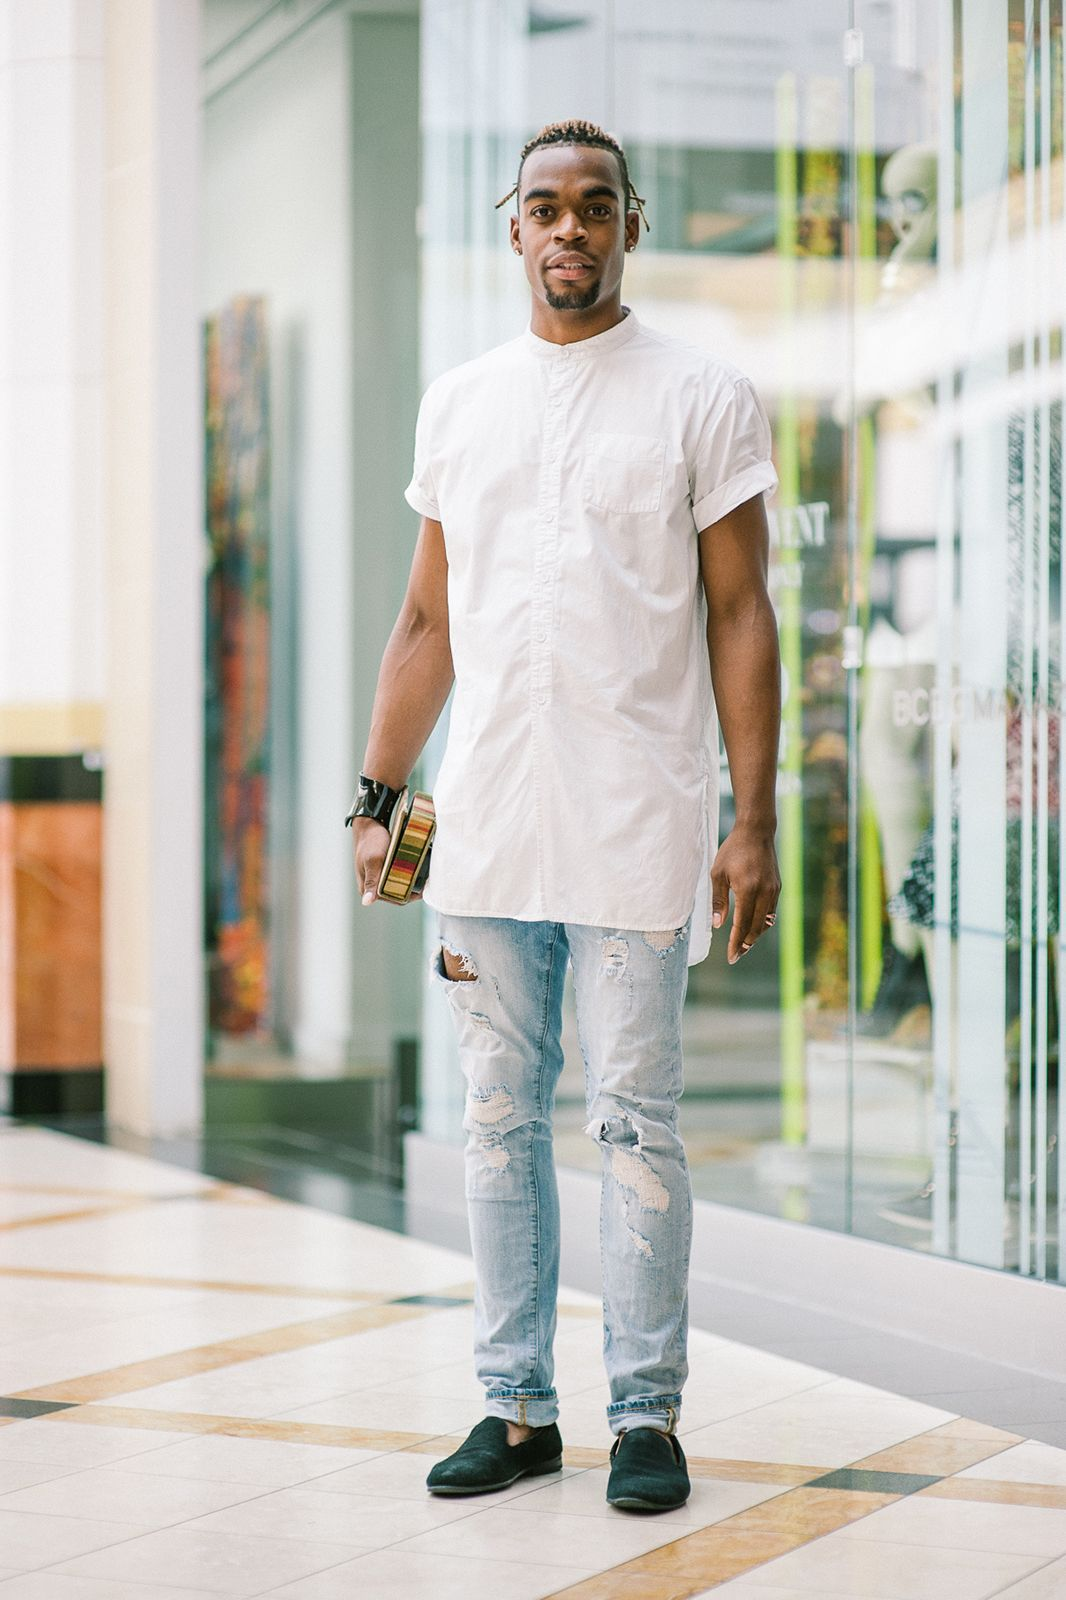 22 insanely cool outfits we found at the mall king of